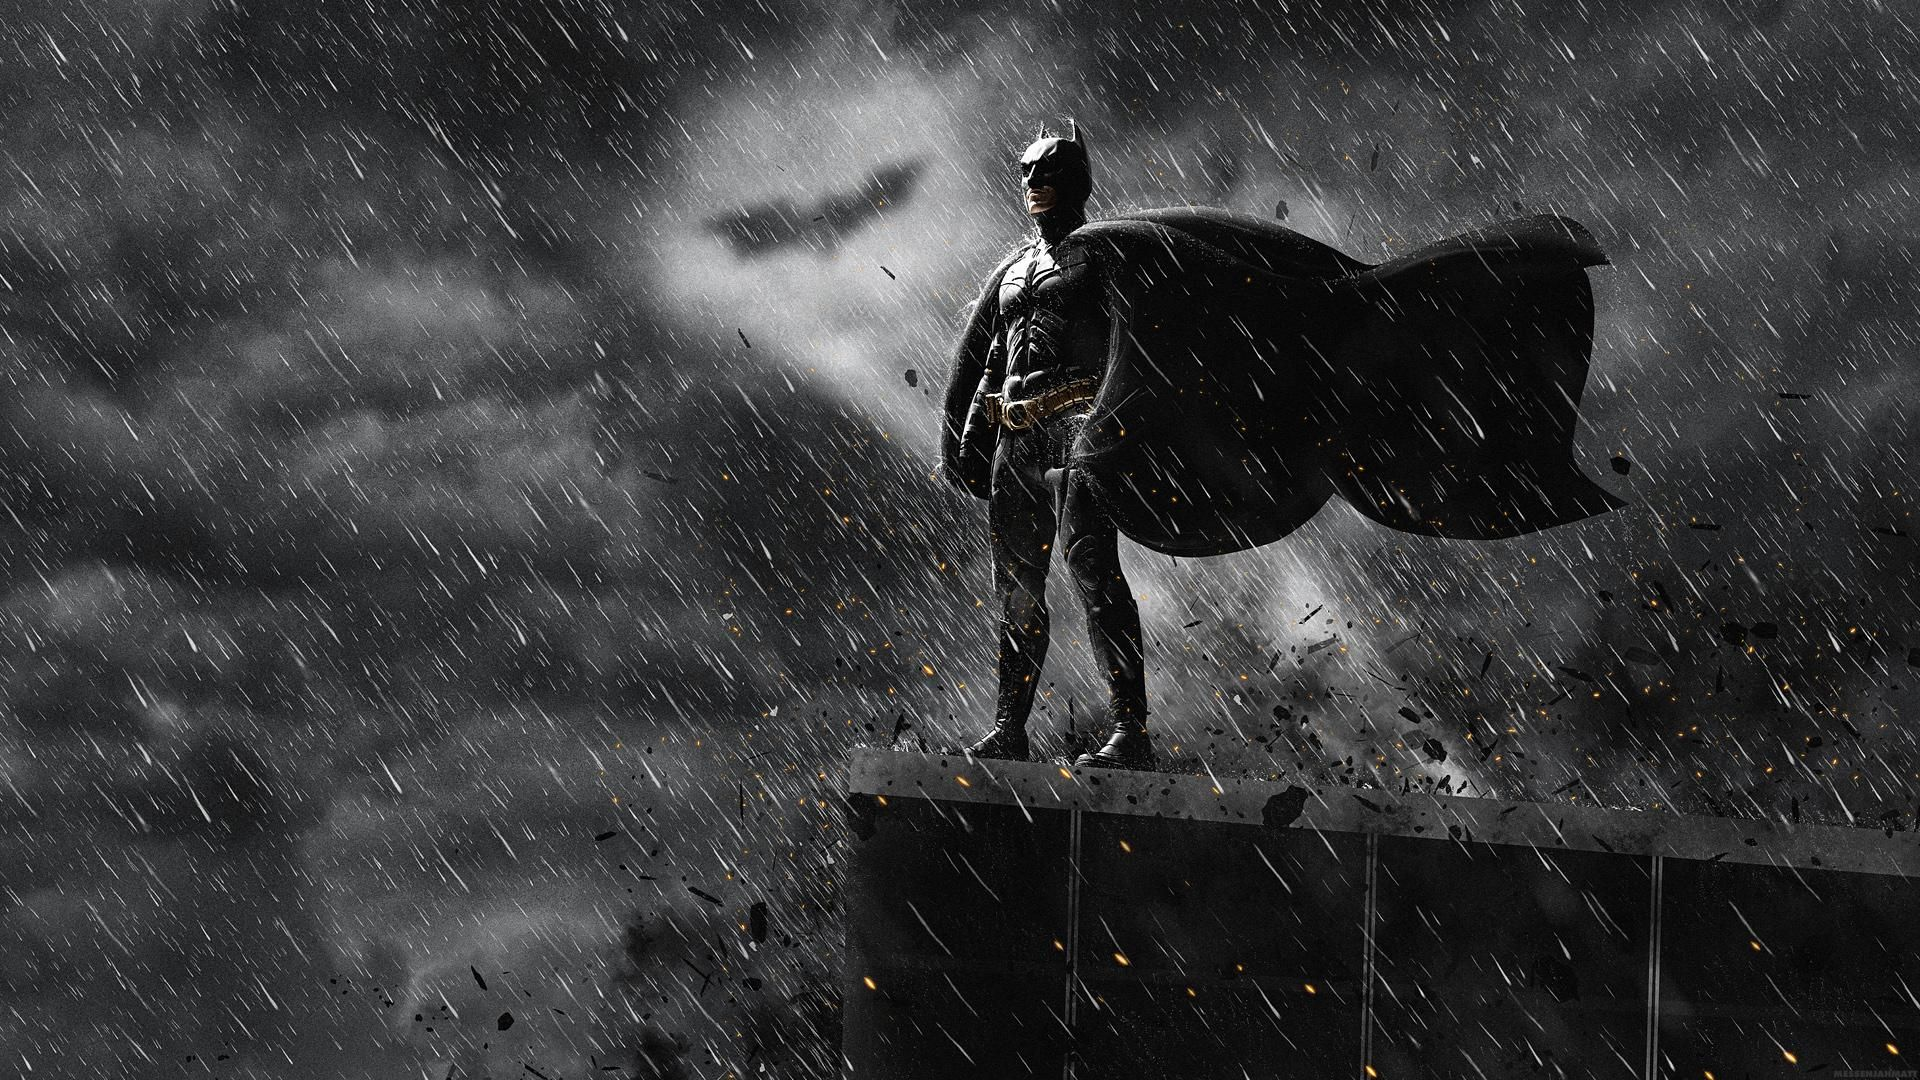 160 The Dark Knight Rises Wallpapers O Cavaleiro Das Trevas